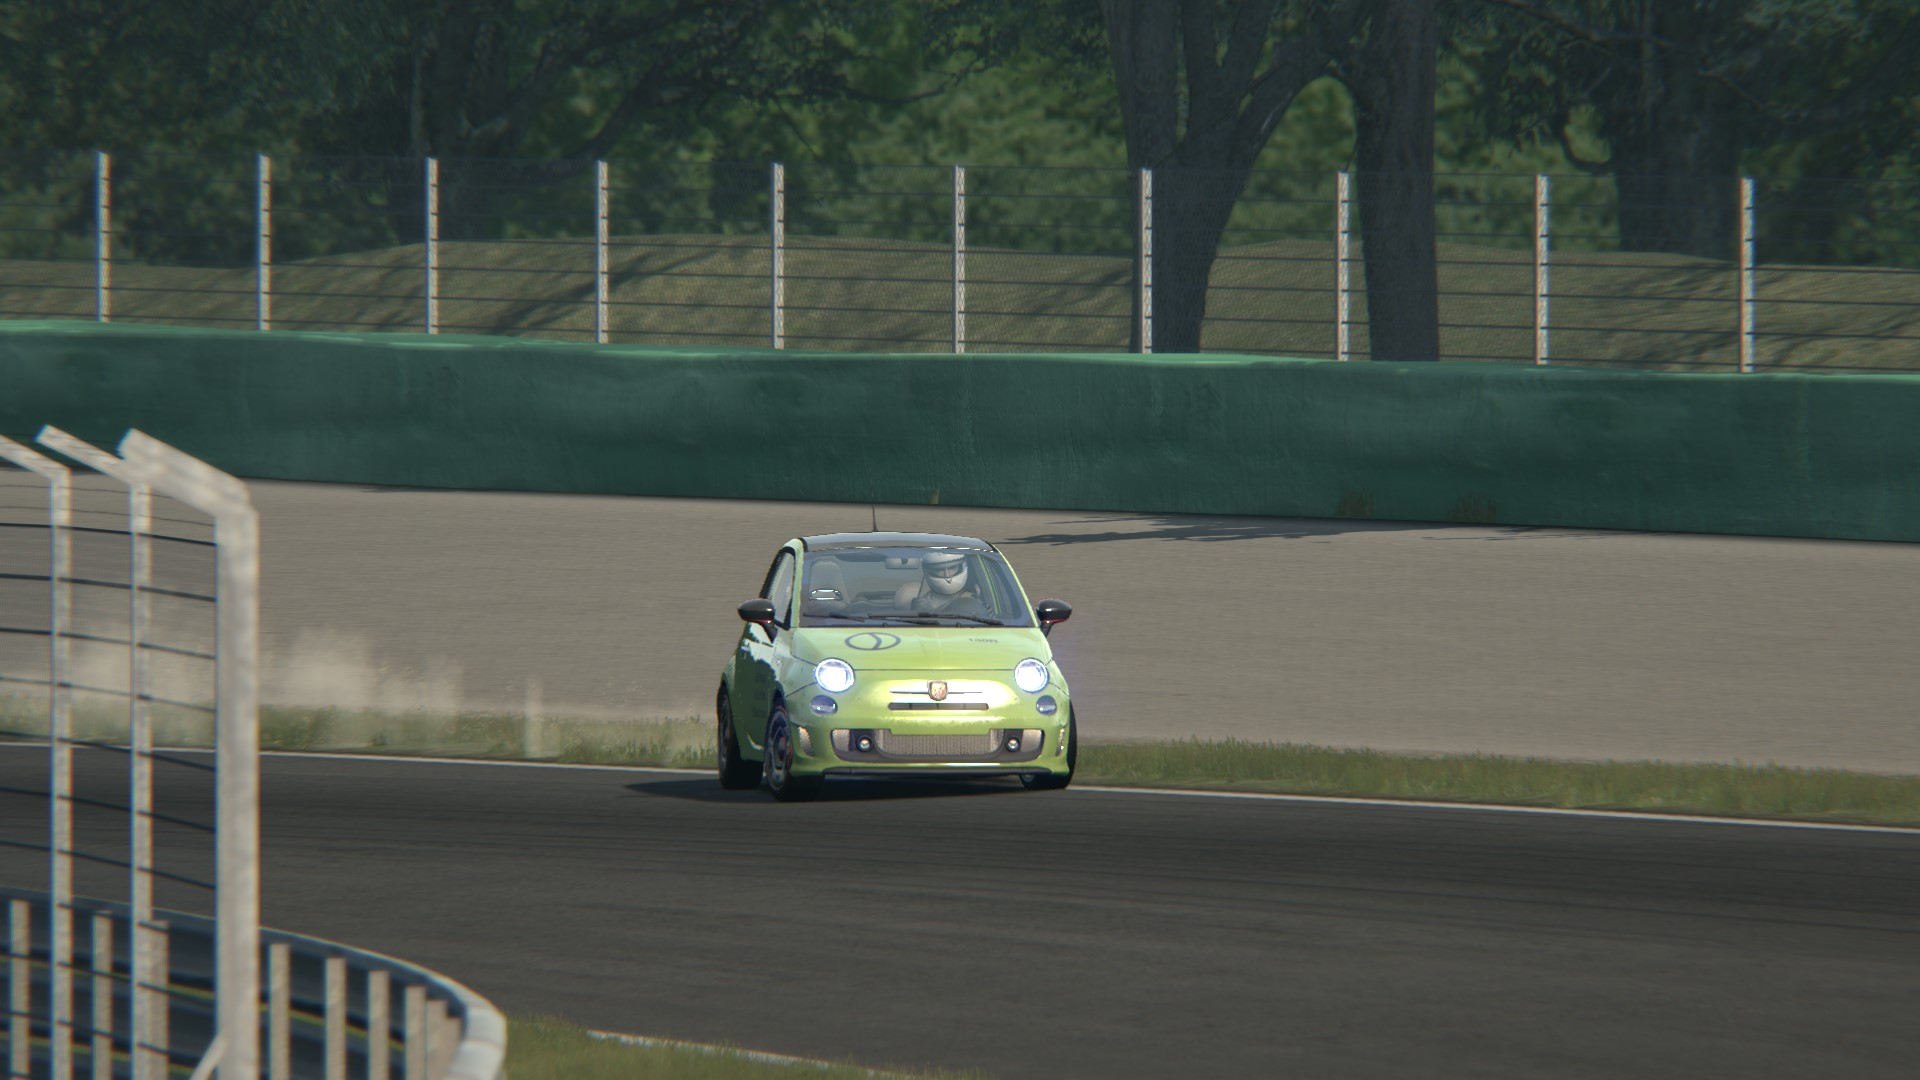 Screenshot_abarth500_monza_19-10-2014-22-52-23.jpg